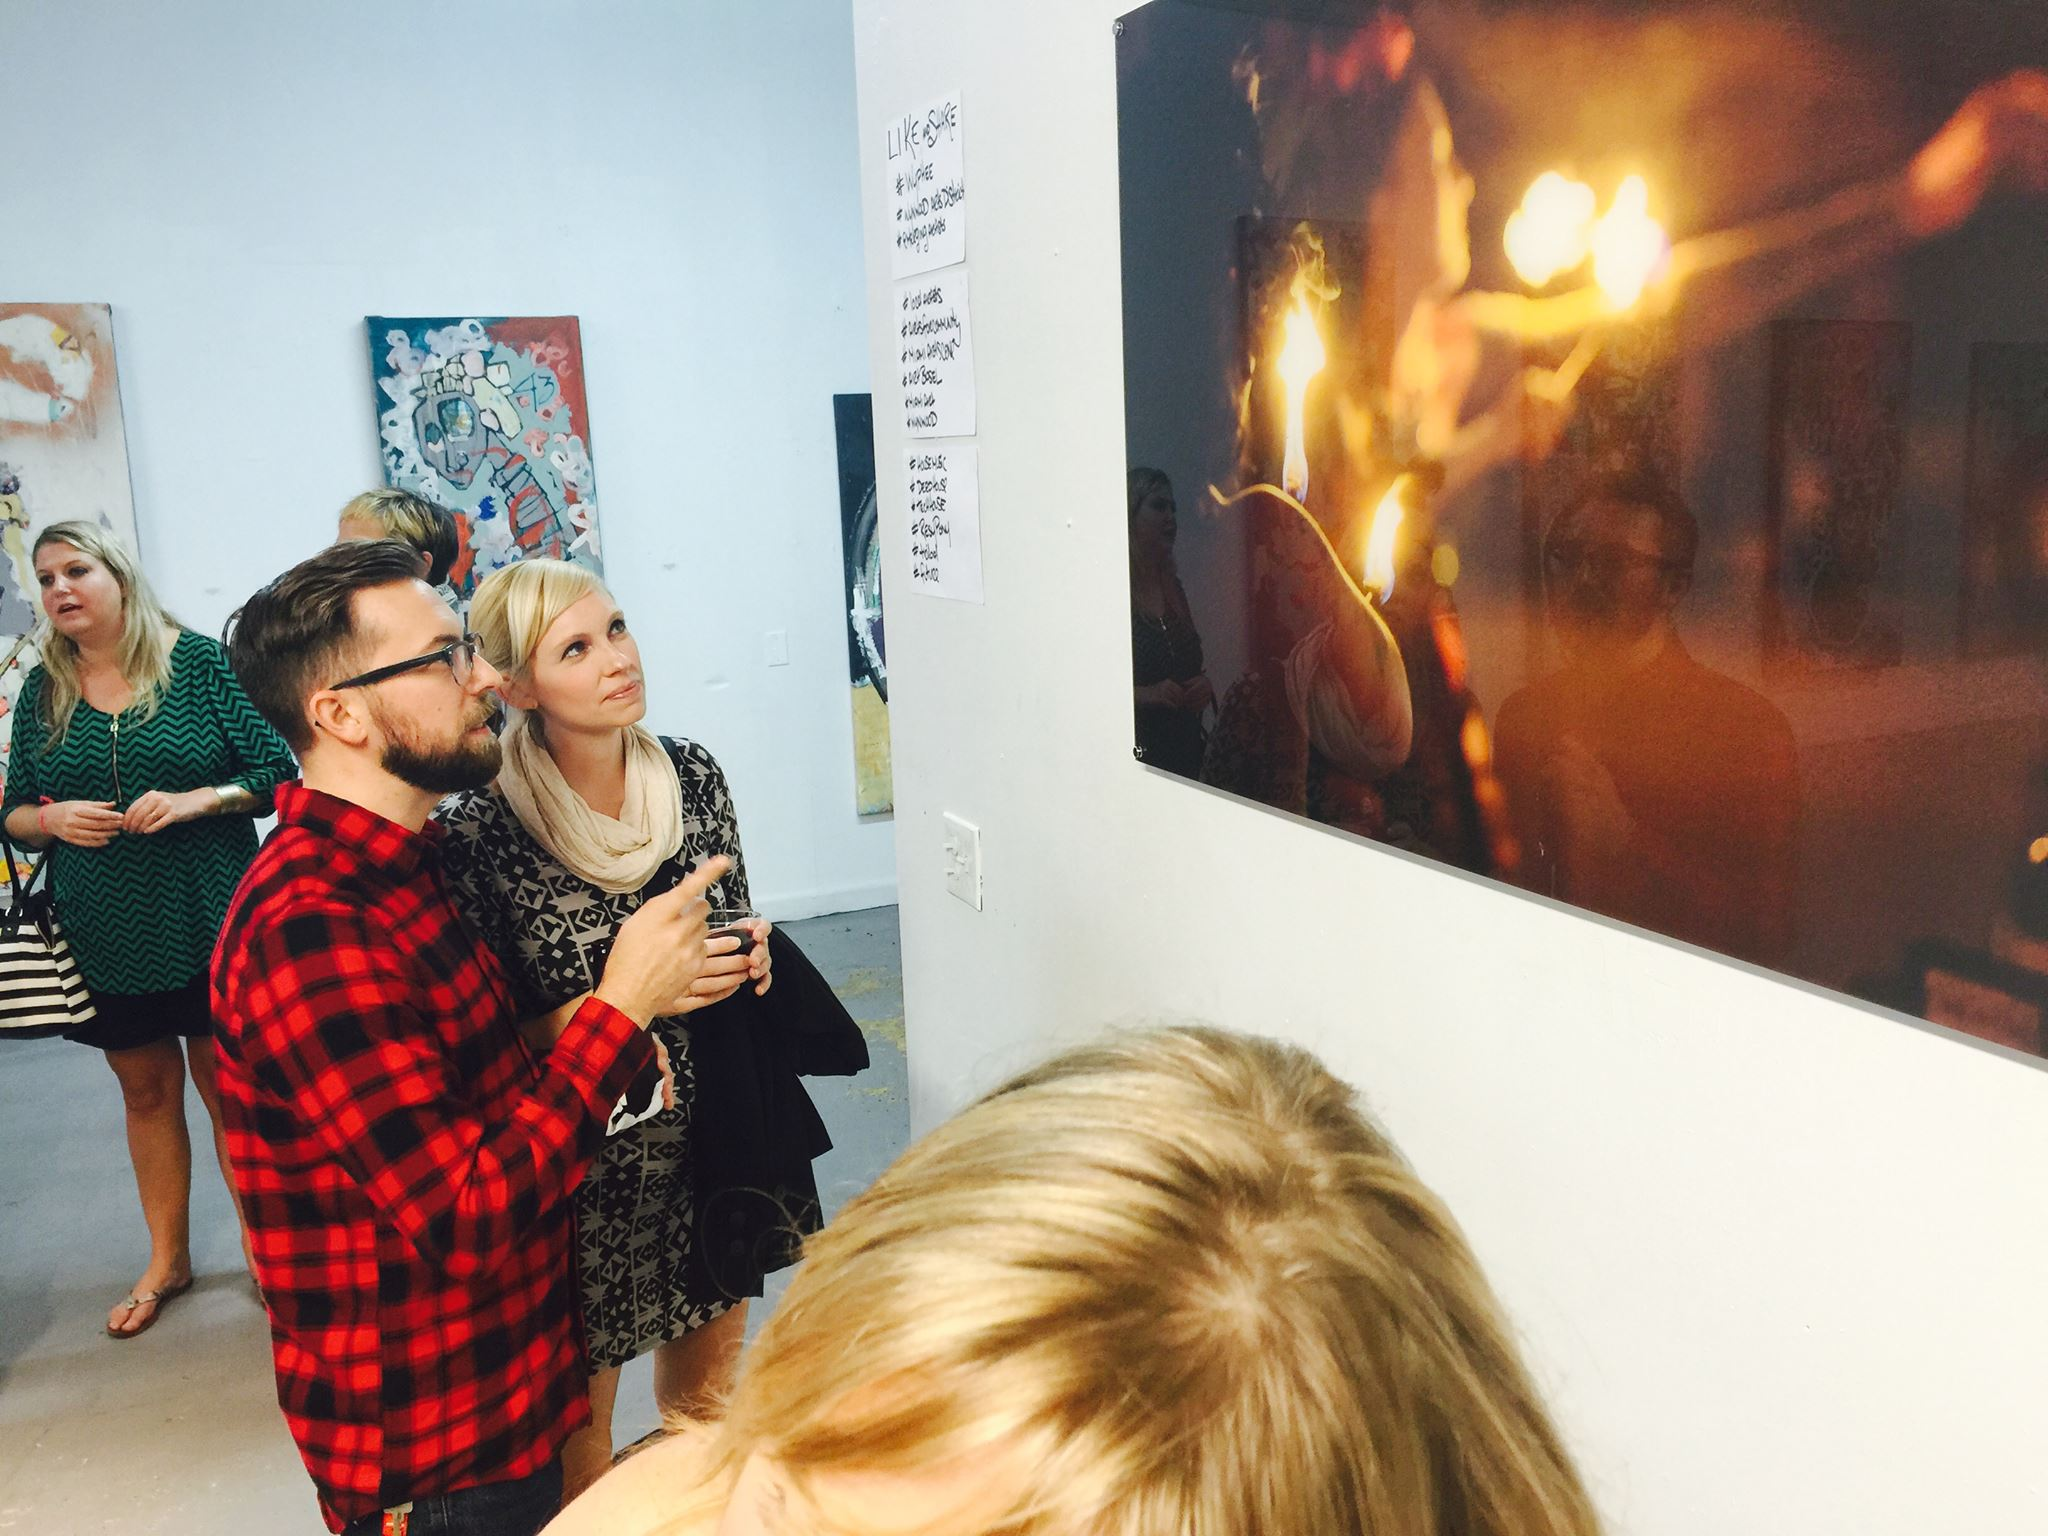 This was an absolutely incredible weekend for me.  I had 8 pieces on display at the Wy Phee Collective Gallery in Wynwood.  We raised money for Art Cares For Kids.  And I had the pleasure of watching strangers take in my work.  I met a bunch of great people and realized my life long dream of being in a major art show.